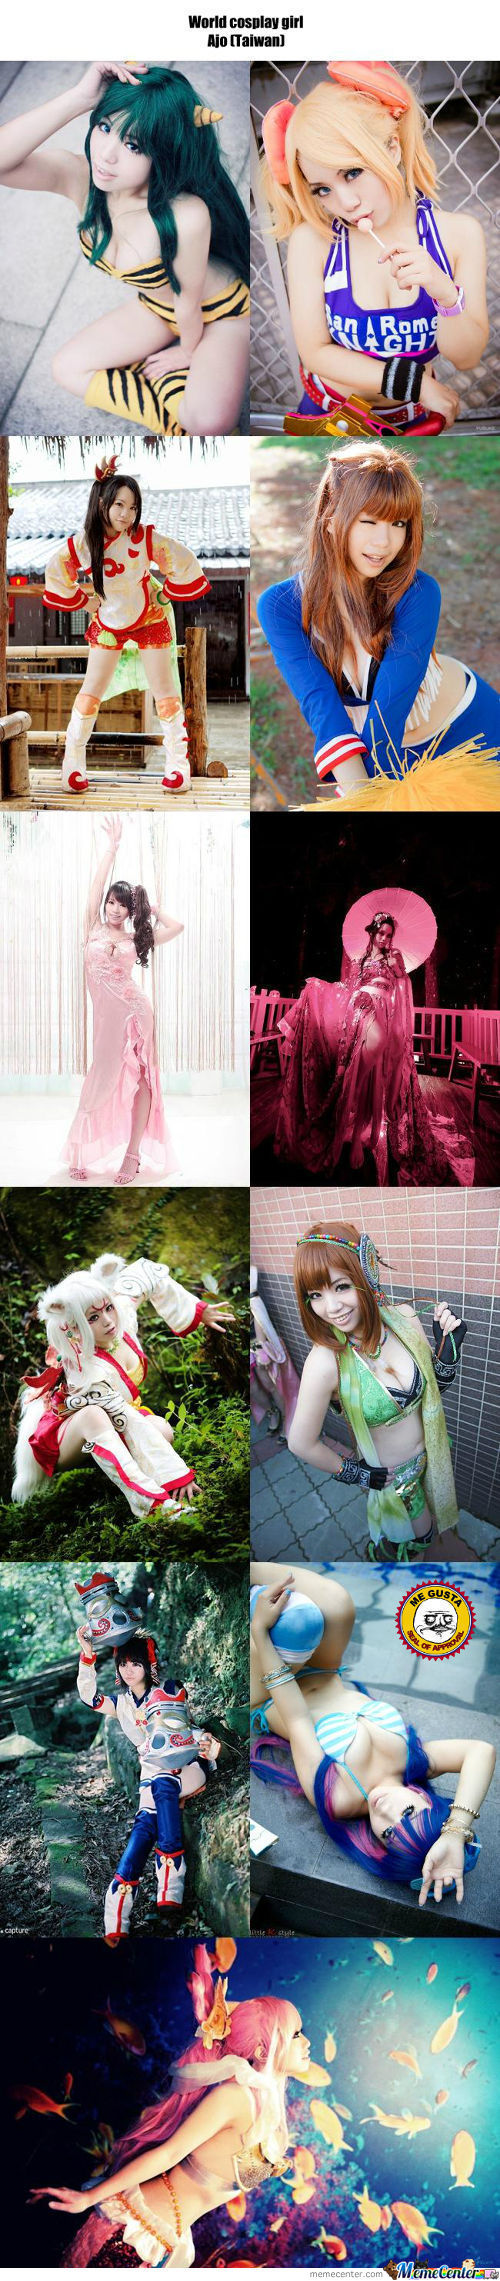 Cosplay Girl 41 : Ajo (Taiwan)